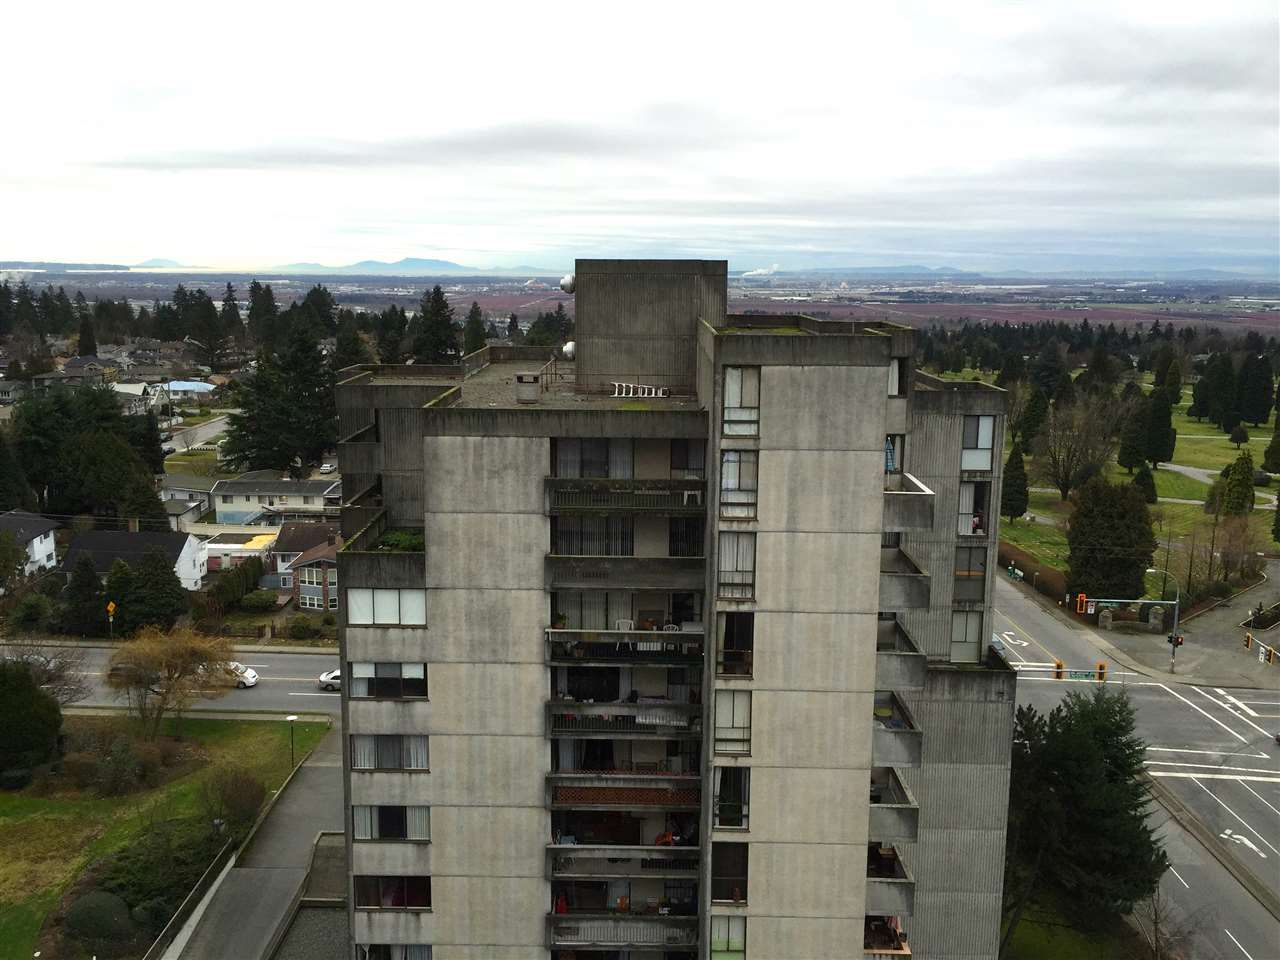 """Main Photo: 1406 6689 WILLINGDON Avenue in Burnaby: Metrotown Condo for sale in """"KENSINGTON HOUSE"""" (Burnaby South)  : MLS®# R2033366"""